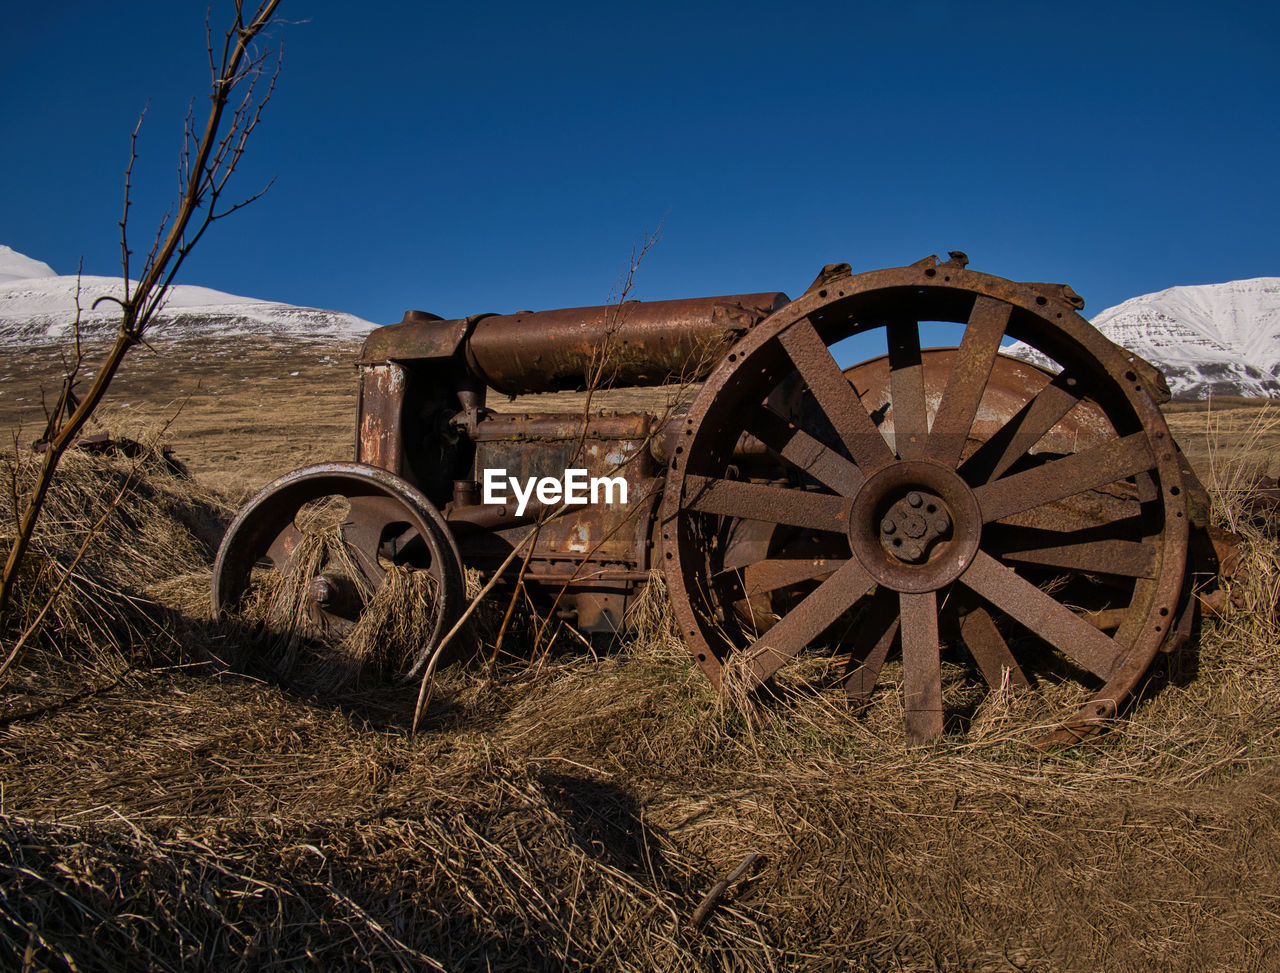 field, land, wheel, sky, nature, no people, transportation, clear sky, abandoned, plant, landscape, old, day, wagon wheel, outdoors, agriculture, tranquility, sunlight, grass, deterioration